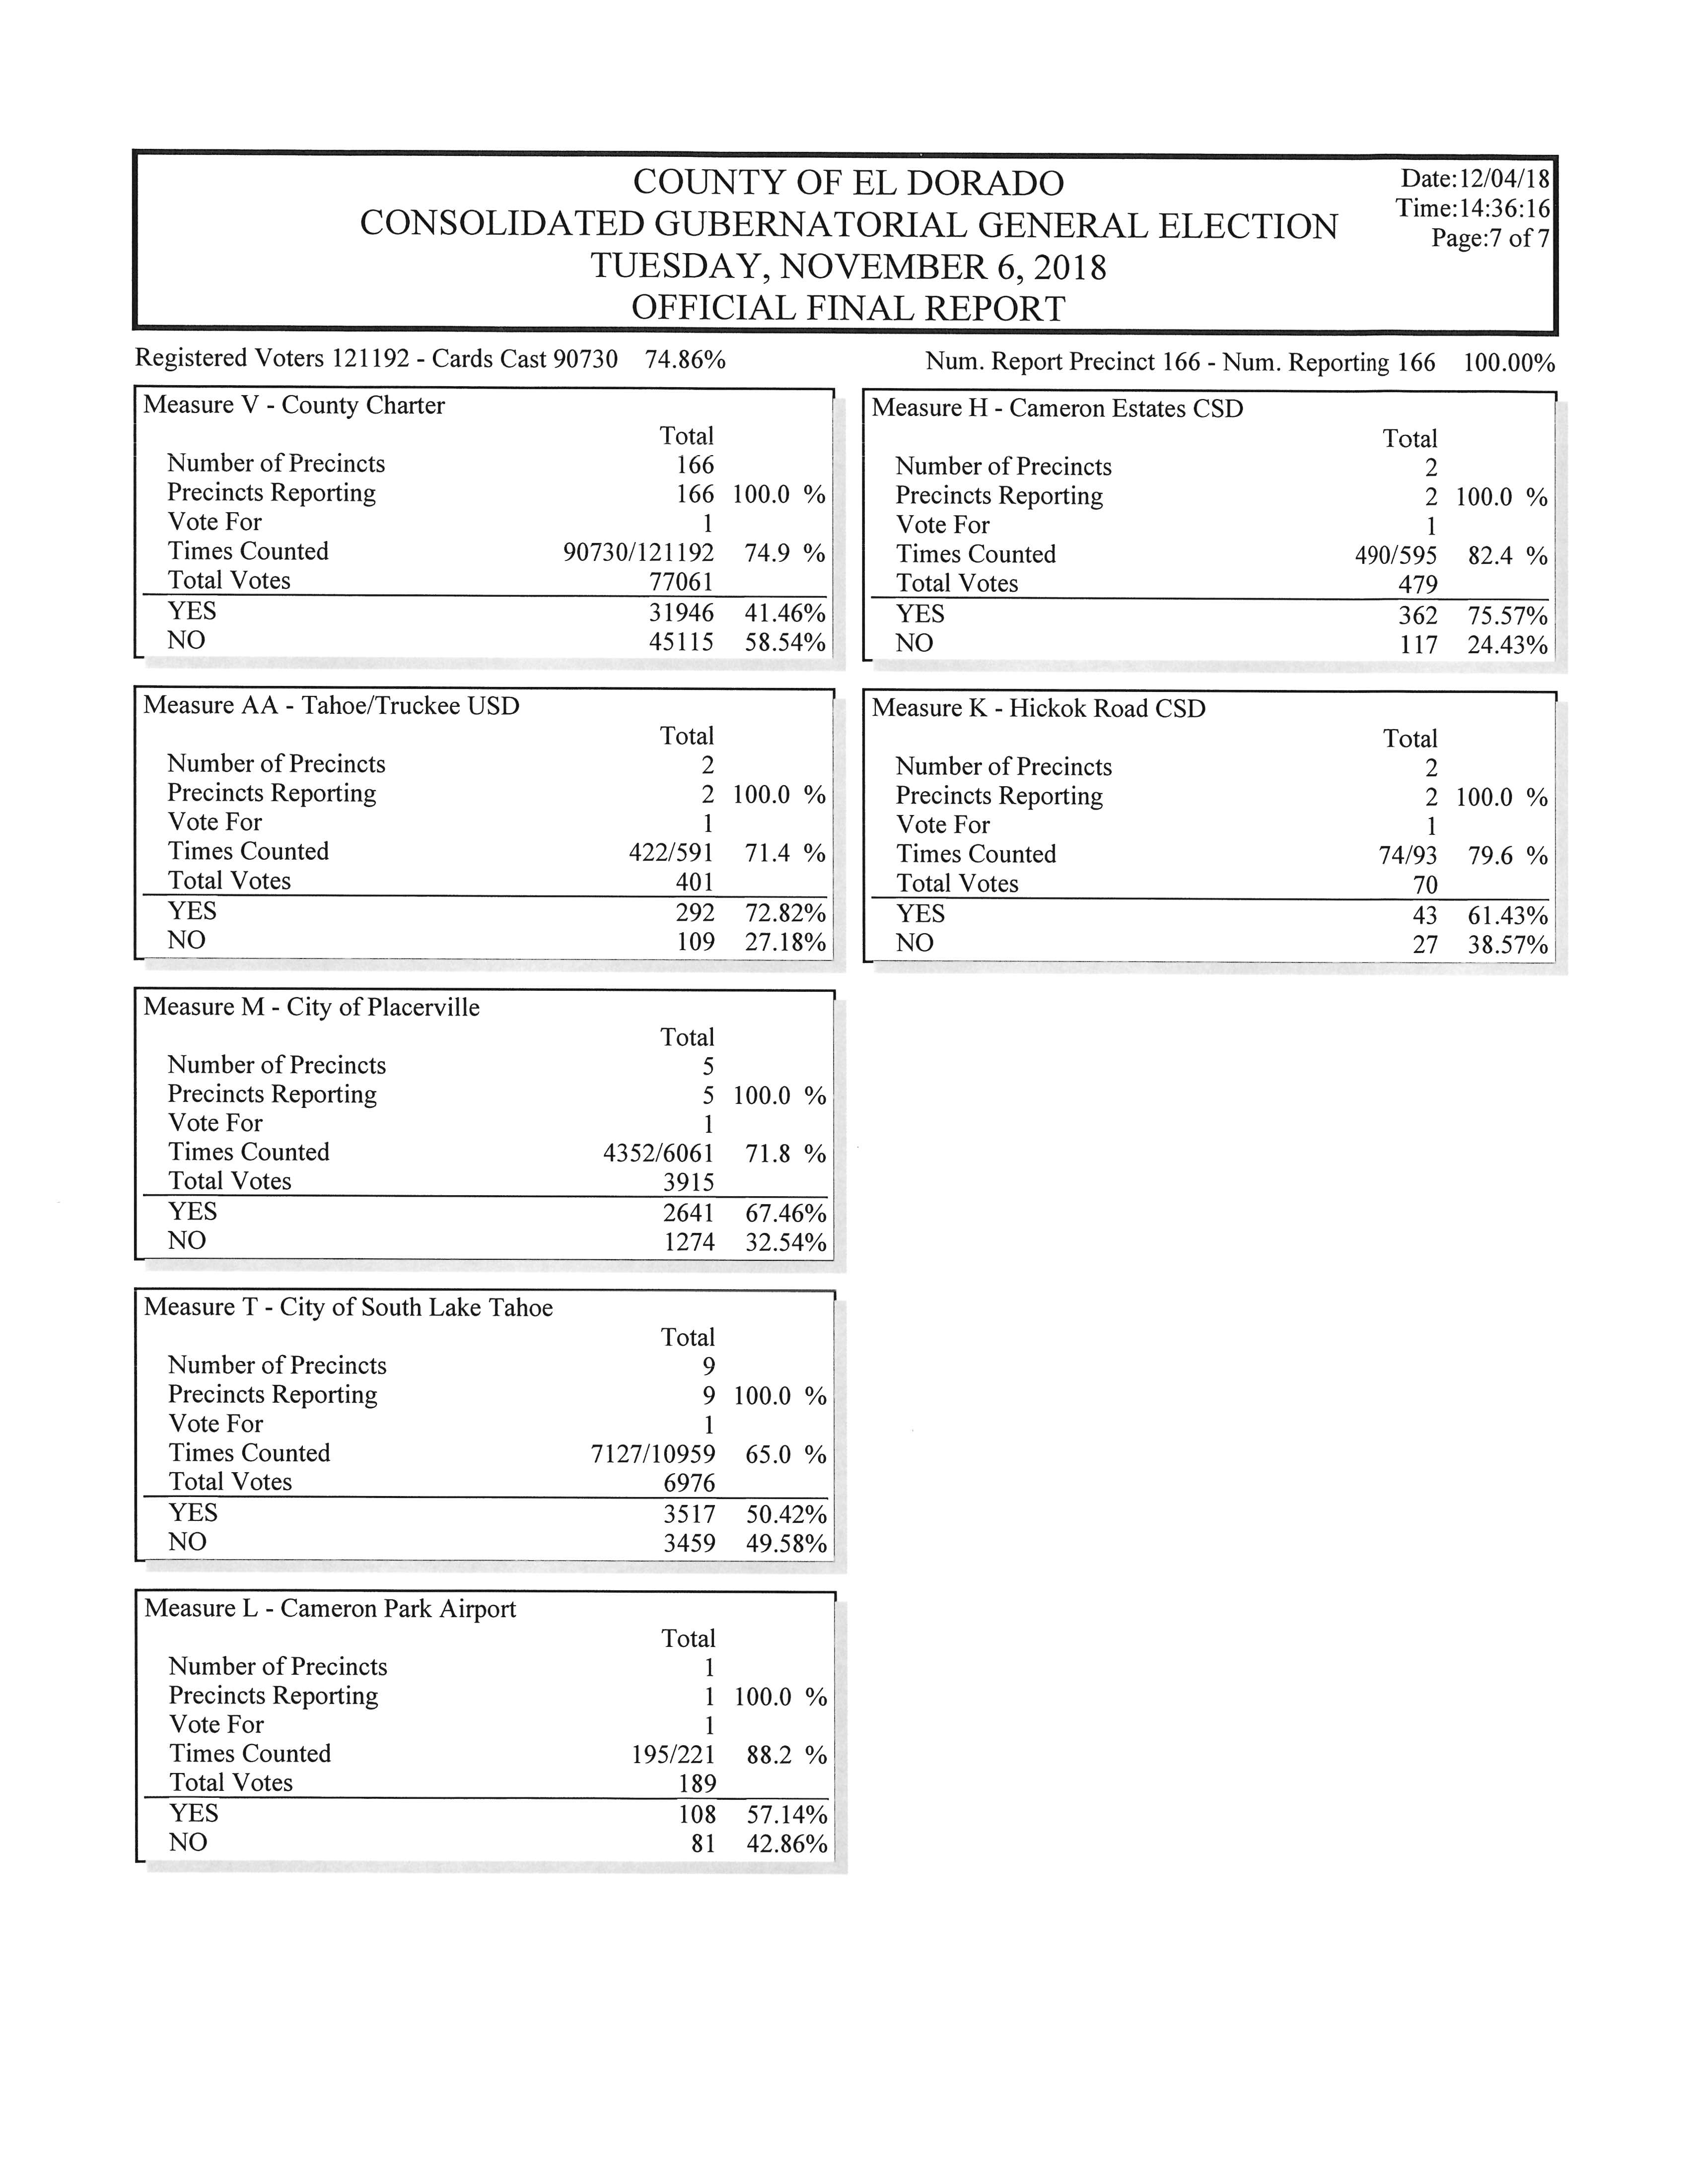 Final Results_Page_7.jpg